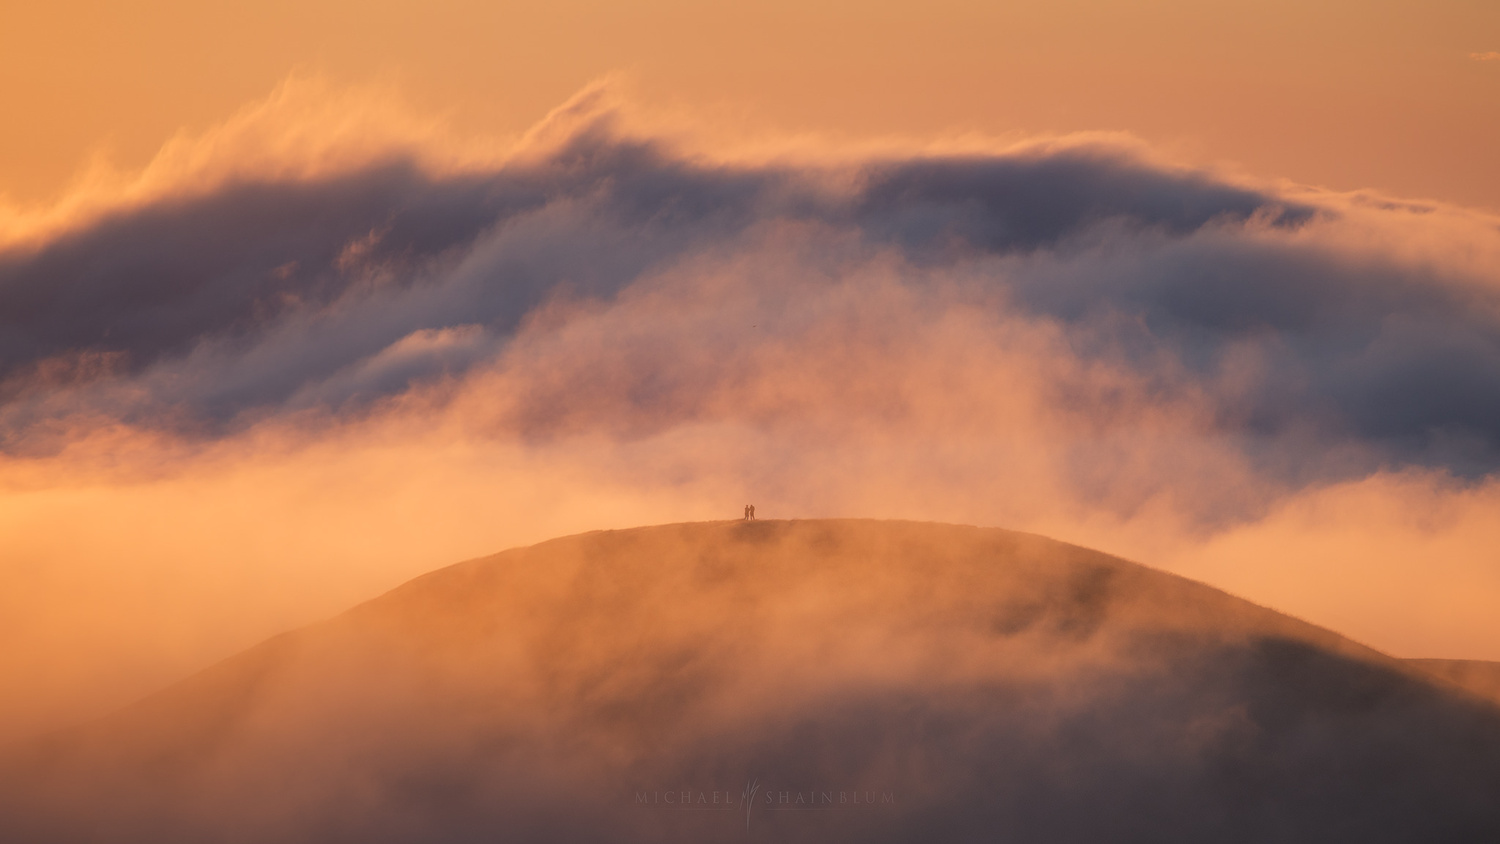 Take me with you, through the clouds by Michael Shainblum